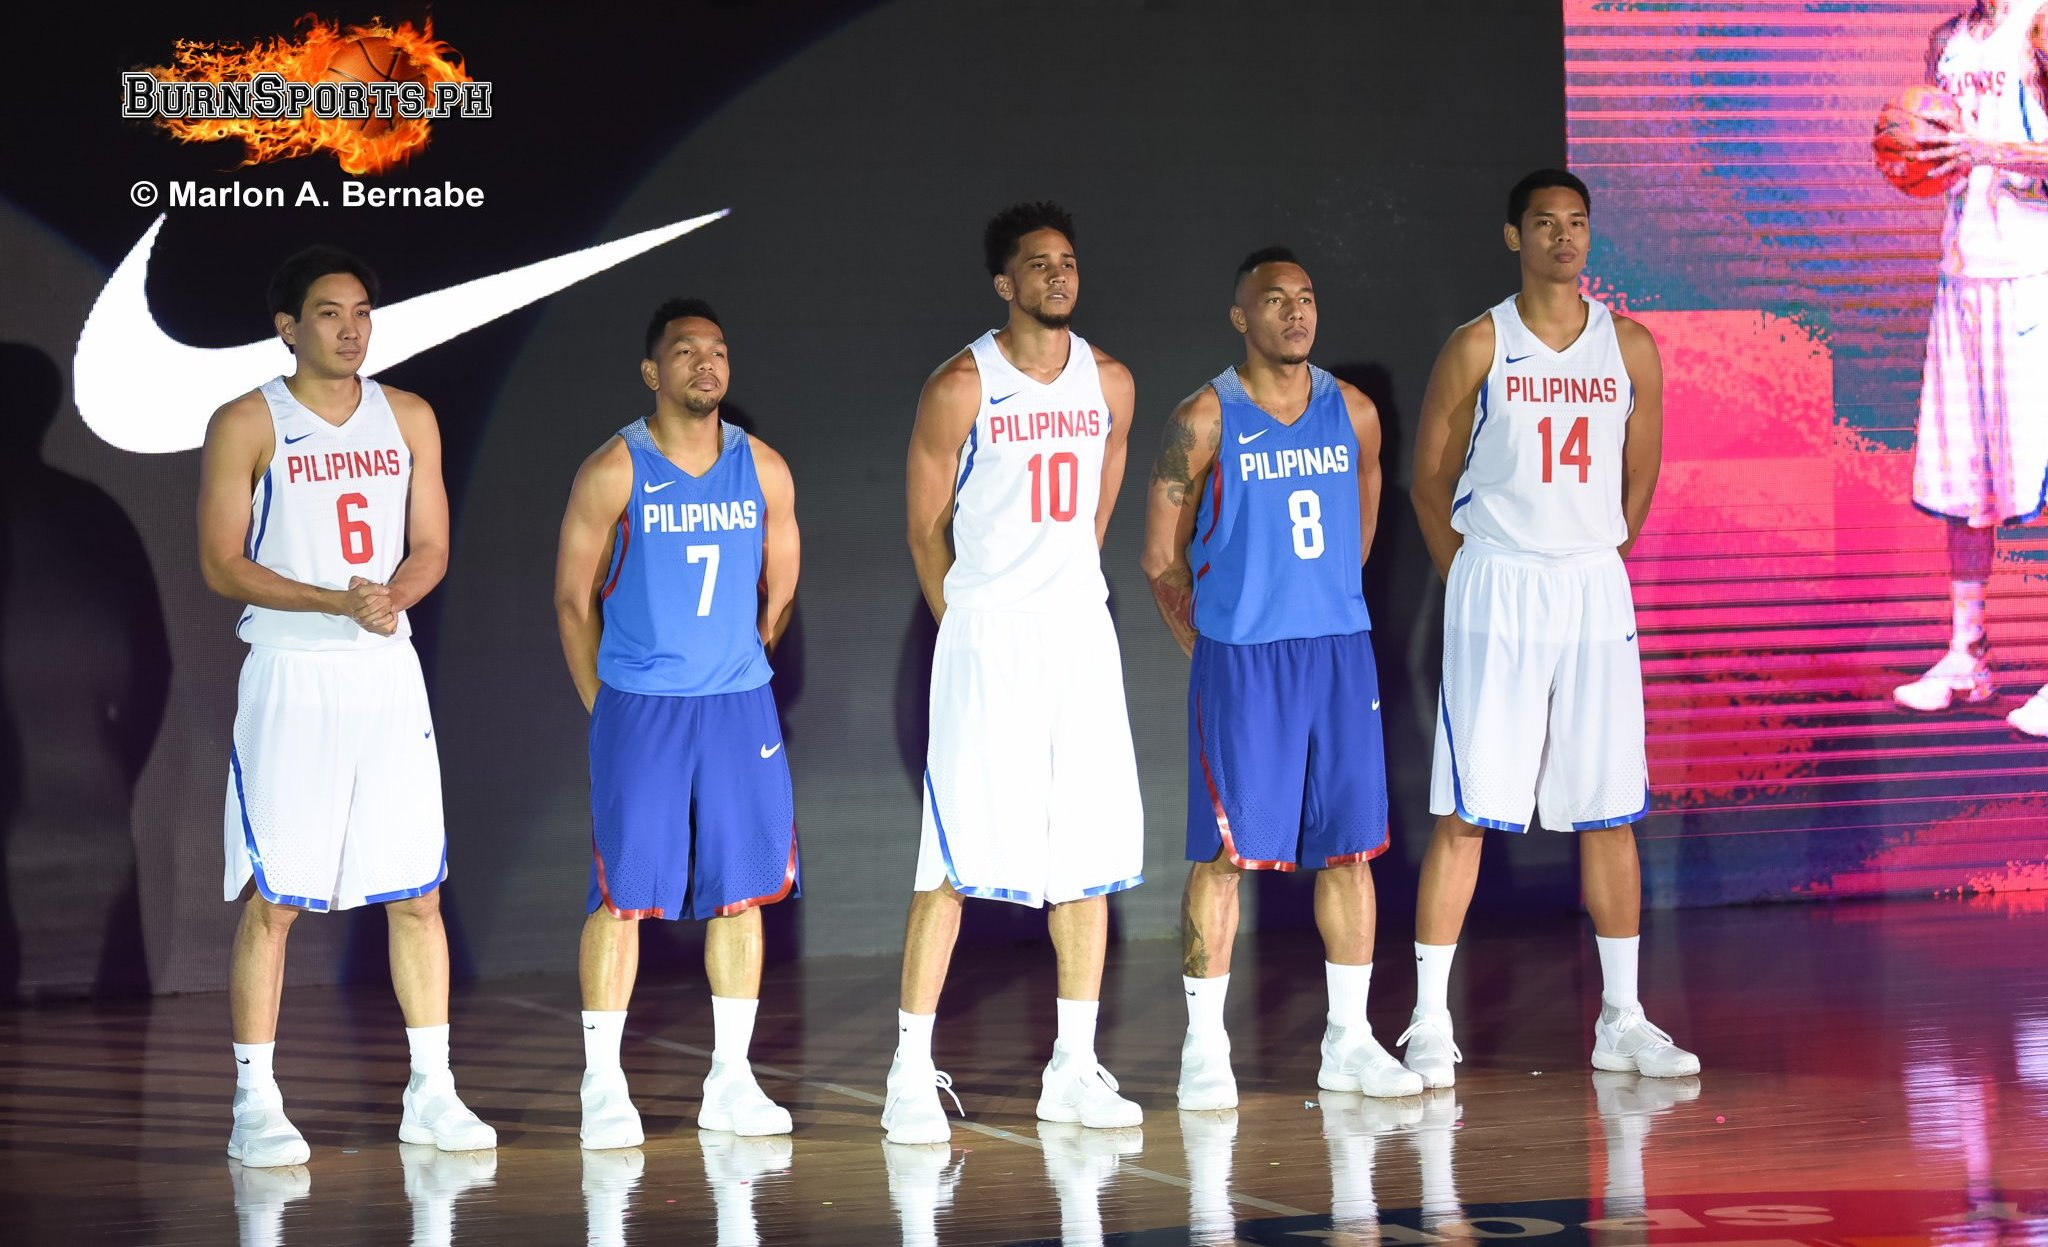 19c8c326619 NIKE EVOLVES BASKETBALL UNIFORMS BEYOND A JERSEY AND SHORT ...